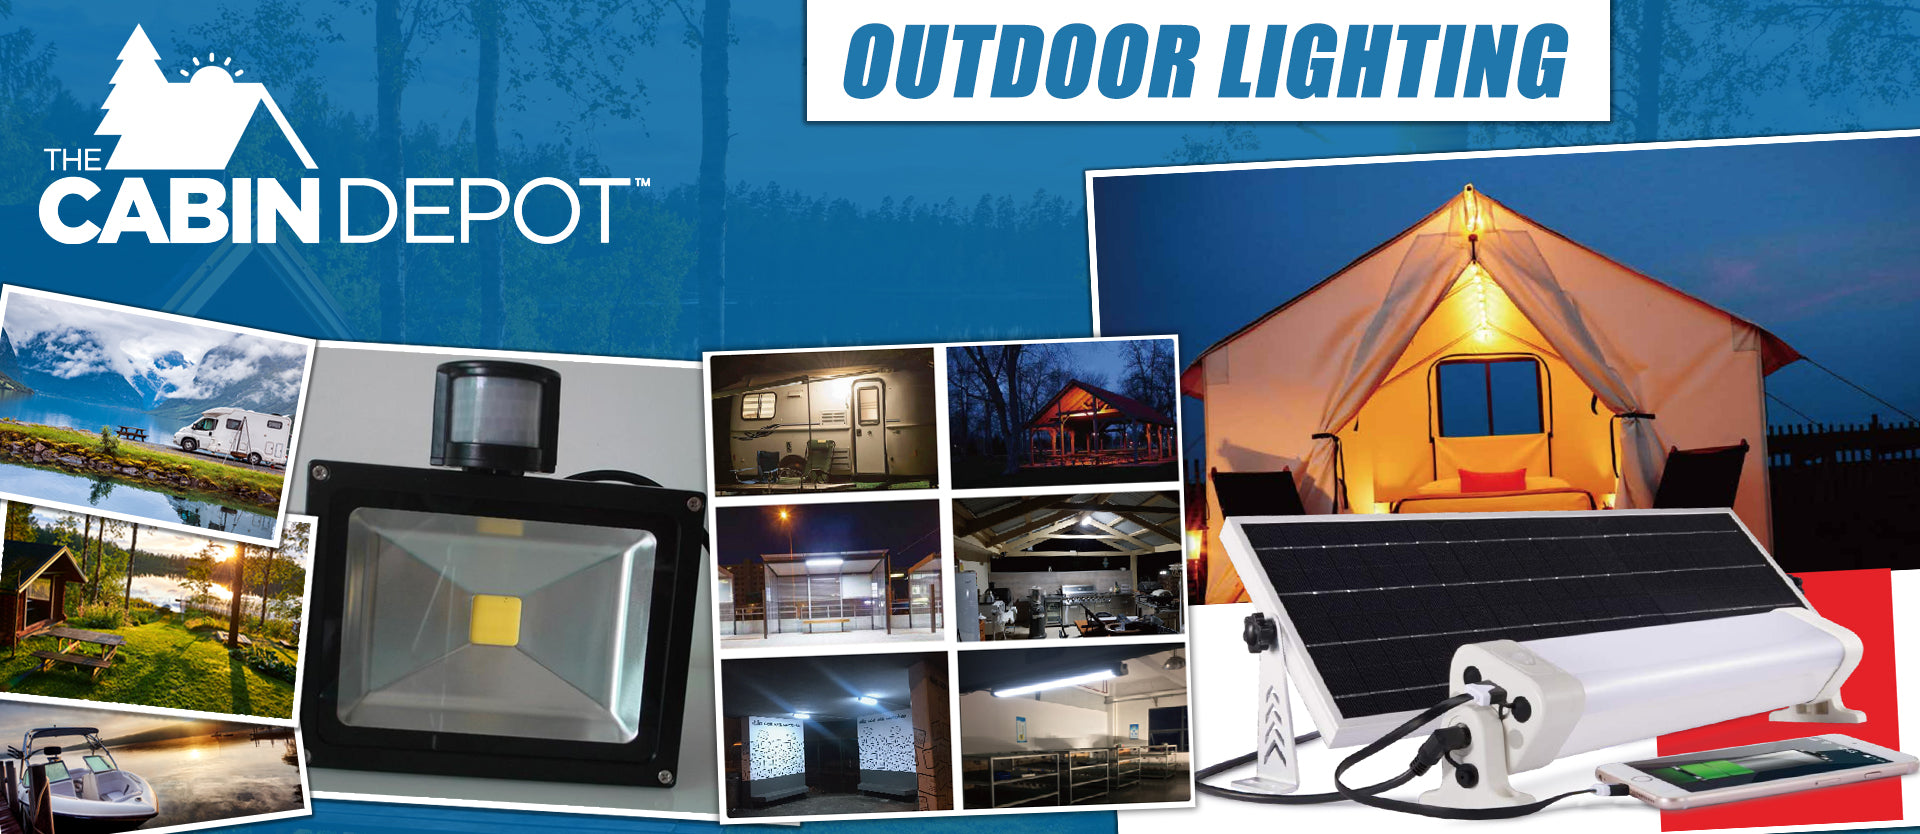 Outdoor Lighting Off Grid The Cabin Depot ™ Canada